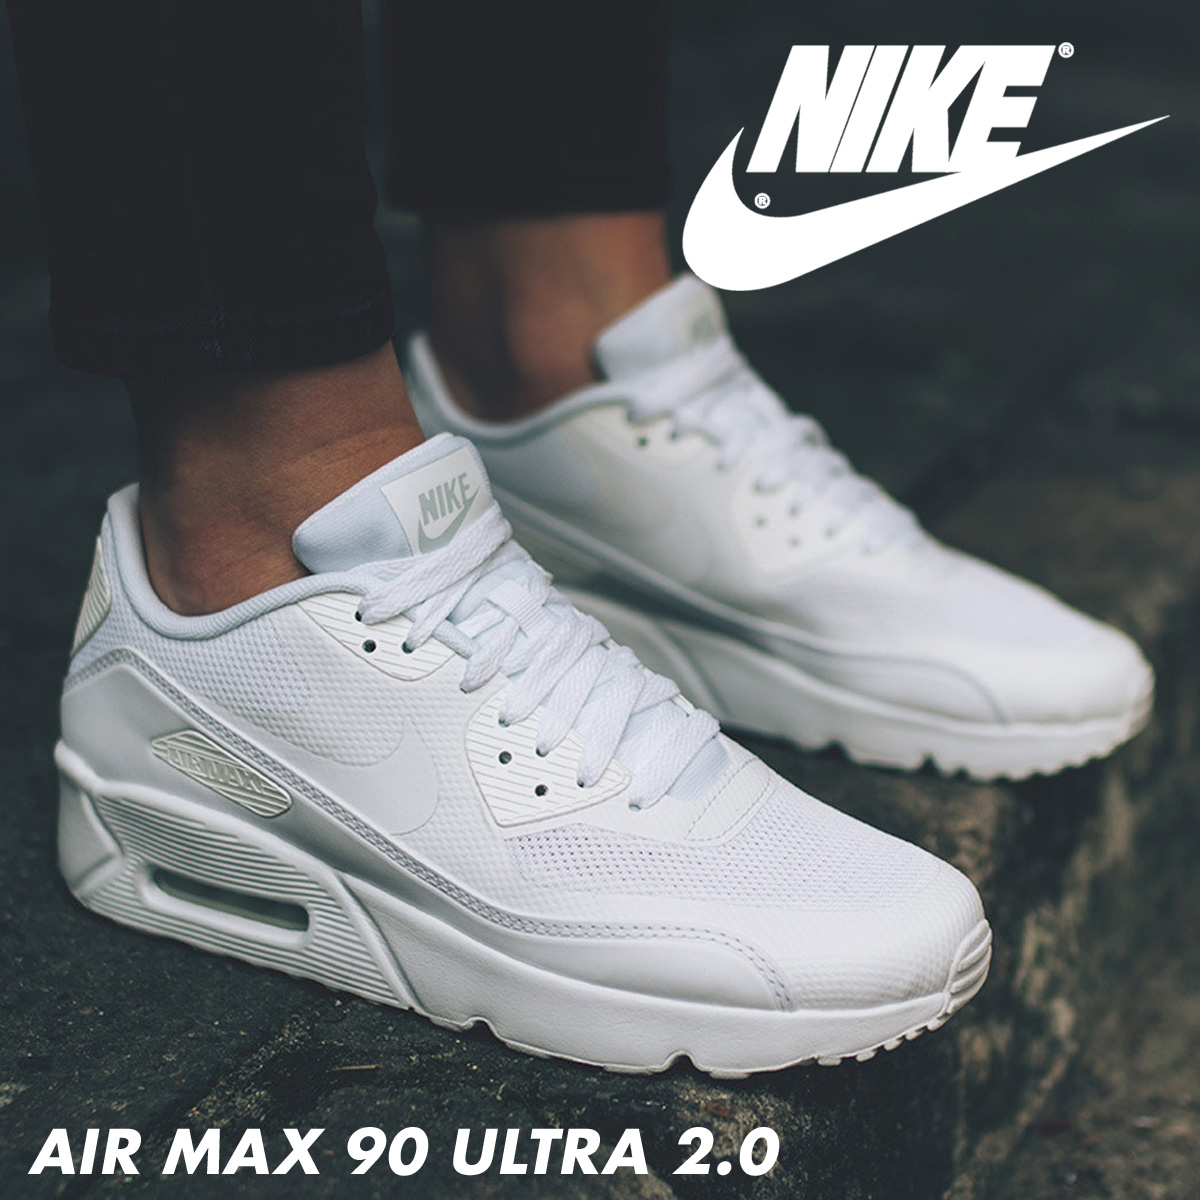 quality design 1ef69 96880 ... Nike NIKE Air Max 90 ultra Lady s sneakers AIR MAX 90 ULTRA ESS 2.0 GS  869,950 ...